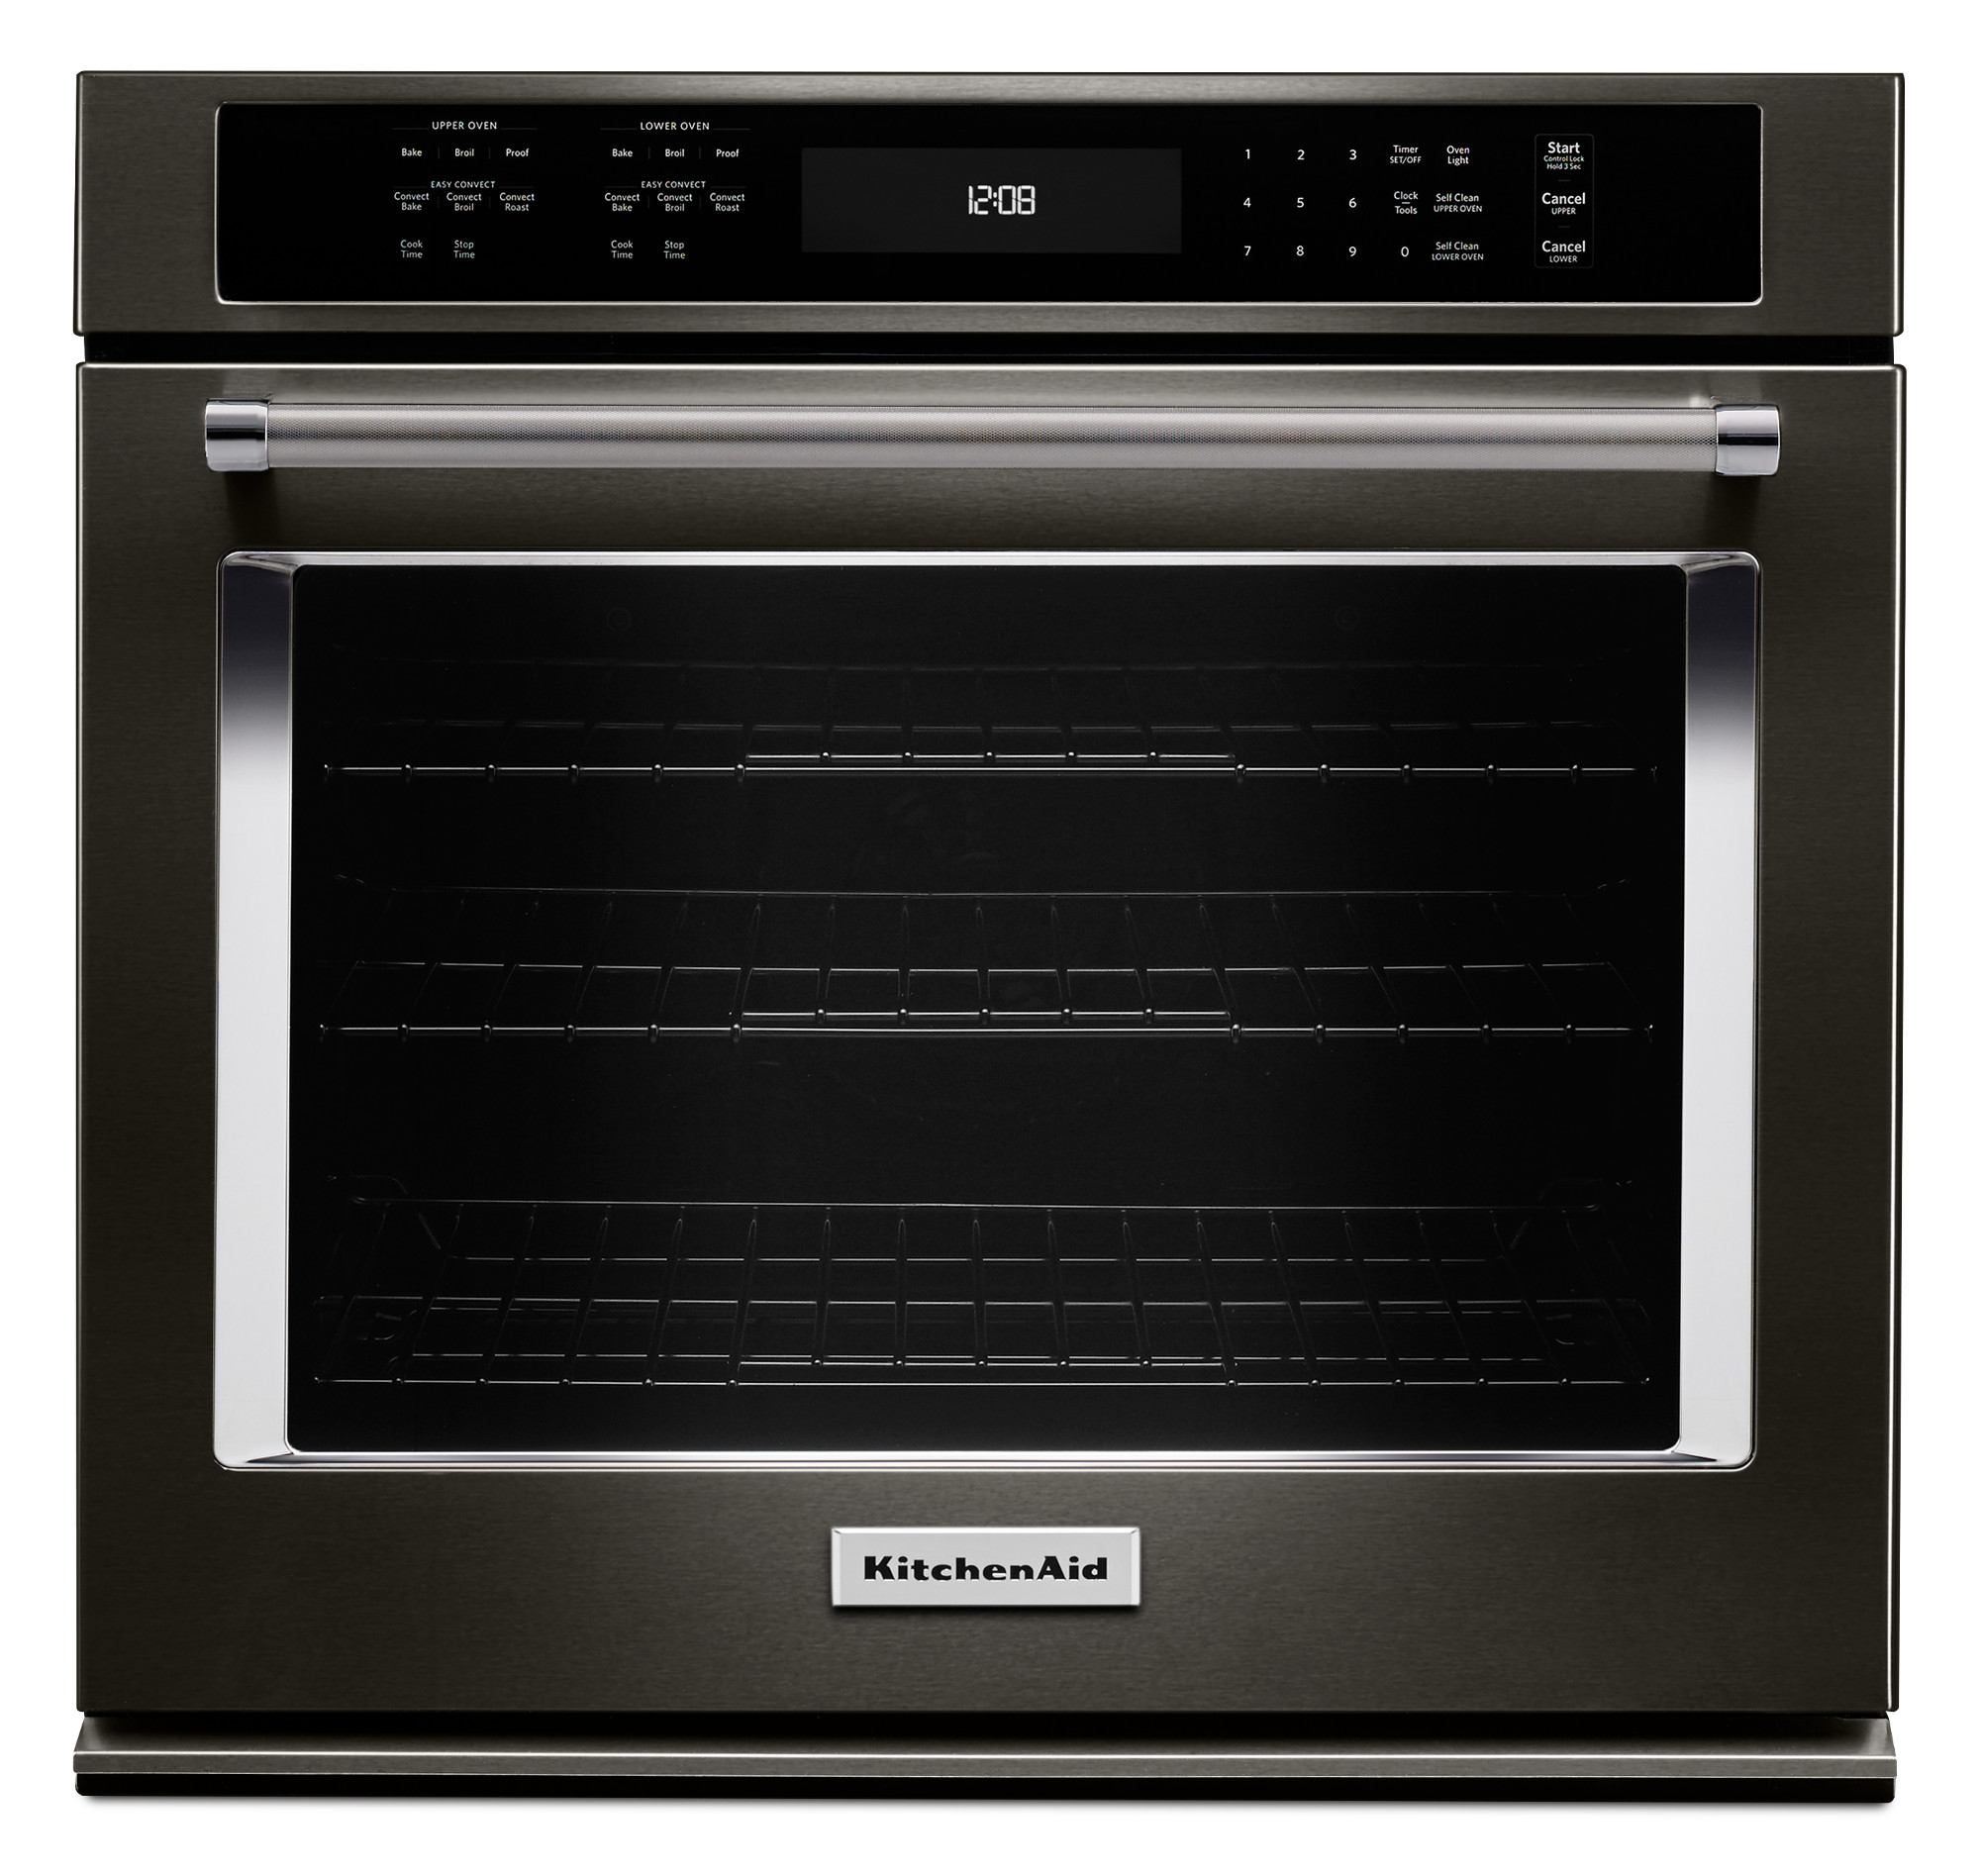 KitchenAid KOSE500EBS 30 Single Wall Oven w/ Even-Heat™ True Convection - Black Stainless